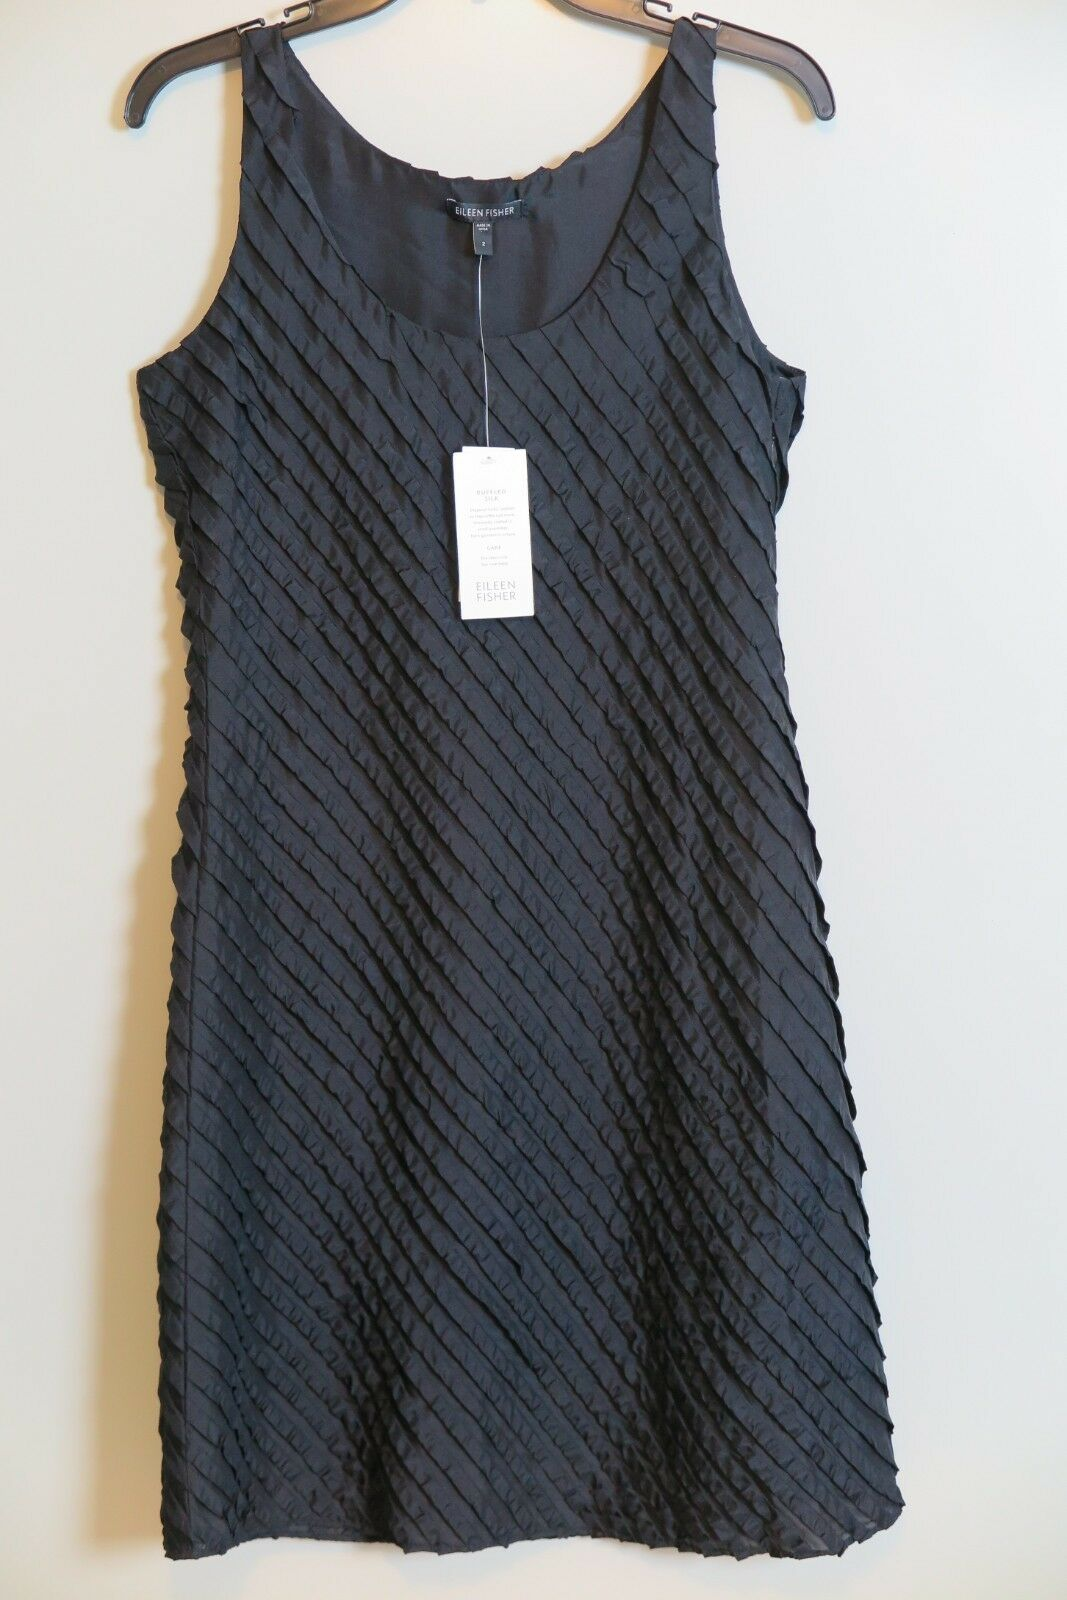 NWT Eileen Fisher schwarz Ruffled Silk Scoopneck Tank Dress Größe 2 MSRP